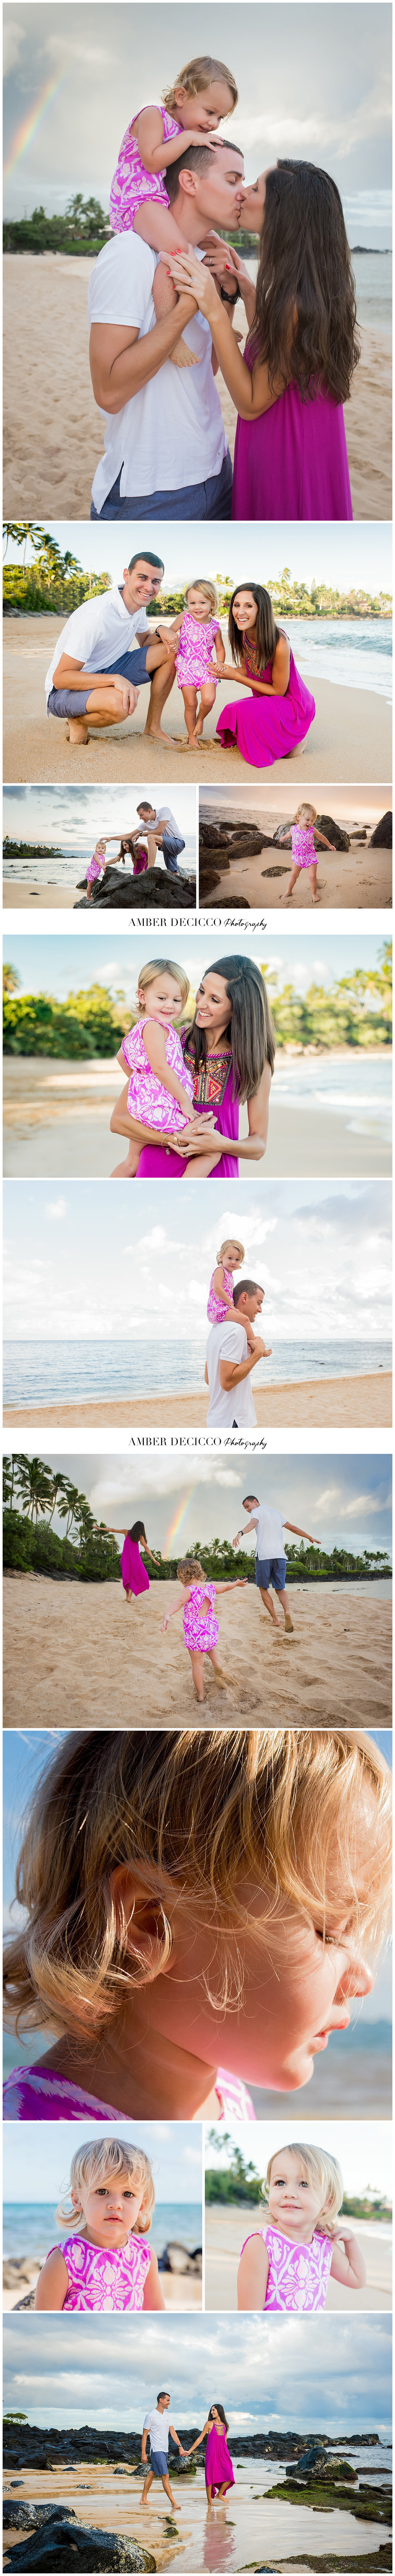 north-shore-family-rainbow-photographs